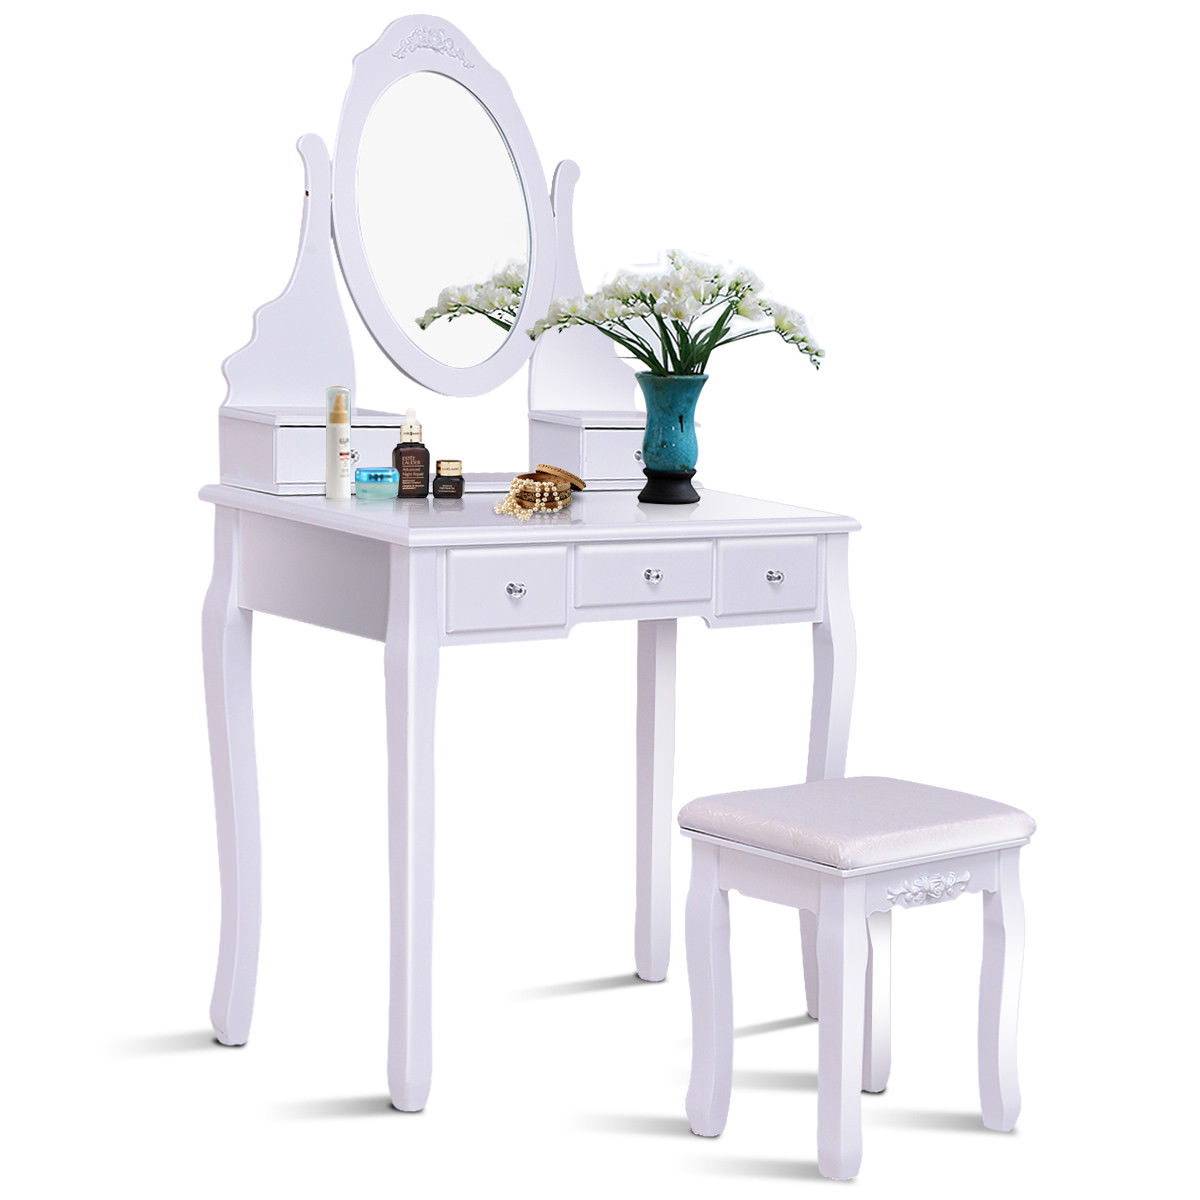 Gymax Bathroom Wooden Mirrored Makeup Vanity Set Stool Table Set White 5 Drawers